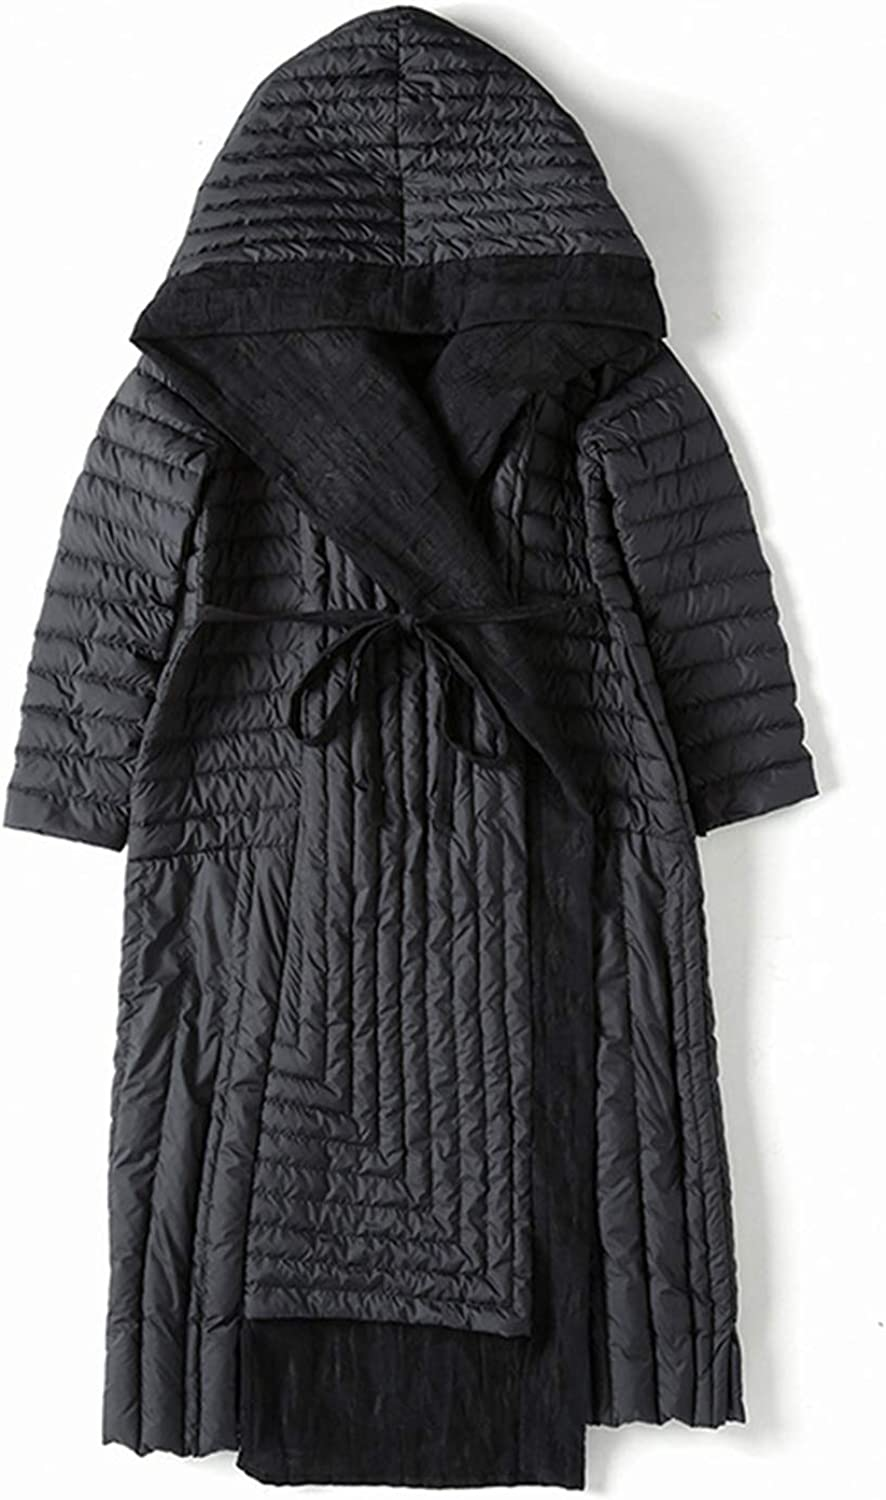 Lightweight Women's Down Jacket Over Sized Long Autumn Winter Coat with Hood Ideal for Autumn Winter Daily Wear,Black